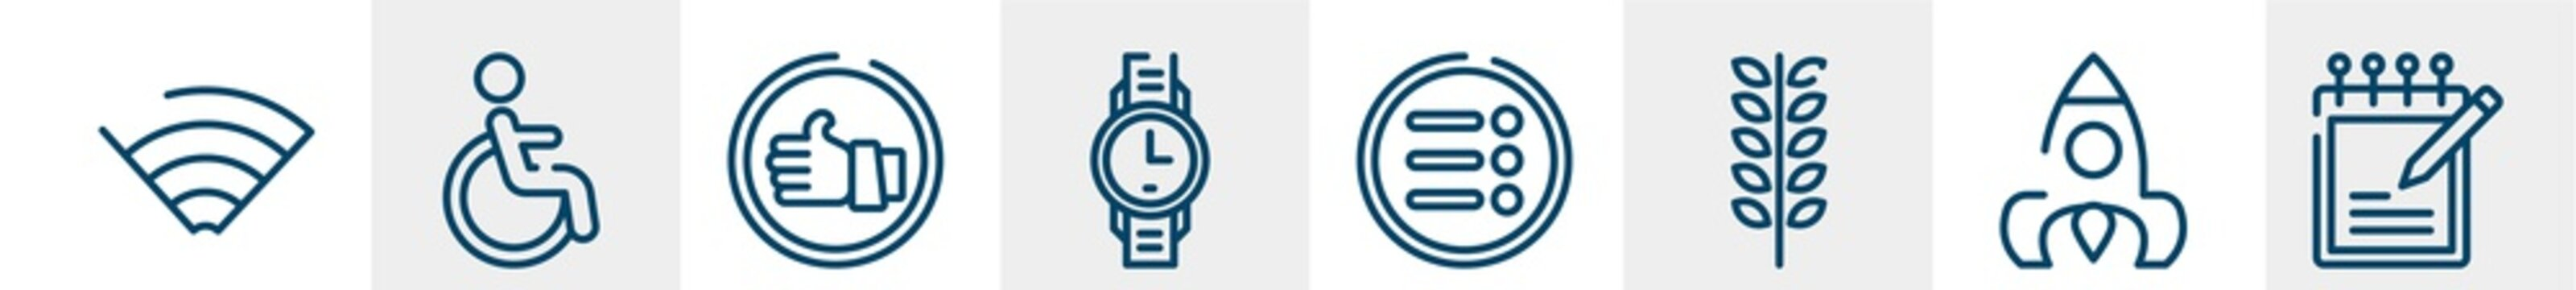 line icons such as wifi, wheelchair, good, watch, more, write outline vector sign. symbol, logo illustration. linear style icons set. pixel perfect vector graphics.